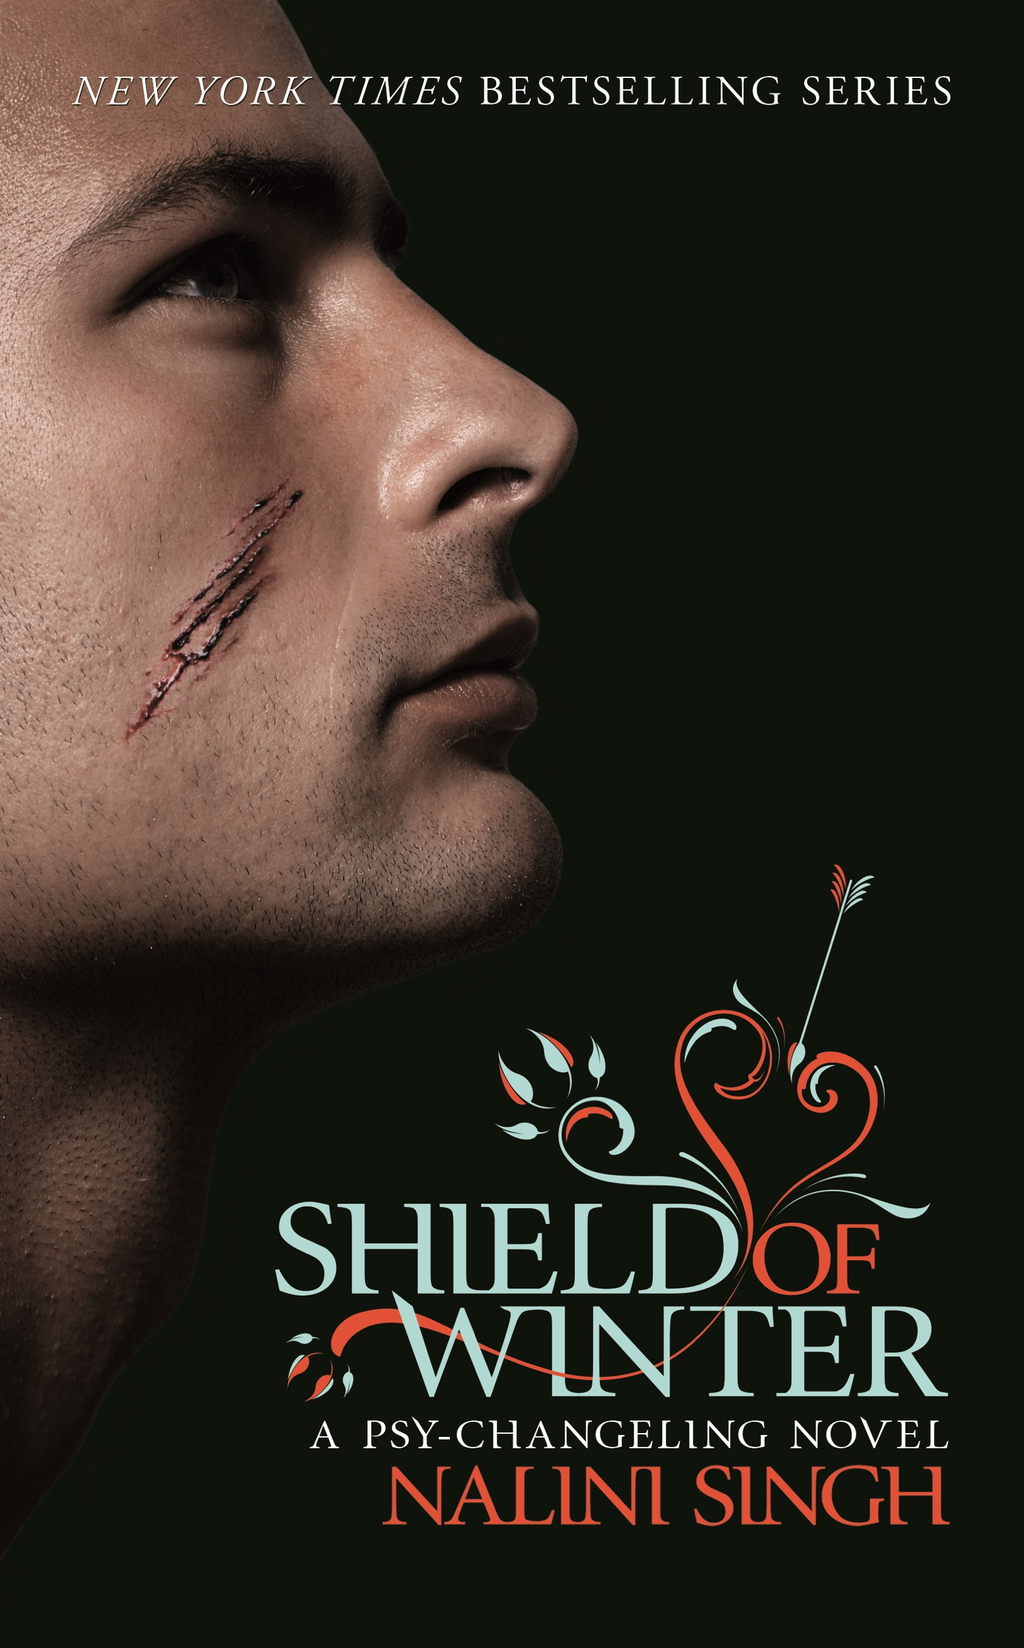 Shield of Winter A Psy-Changeling Novel